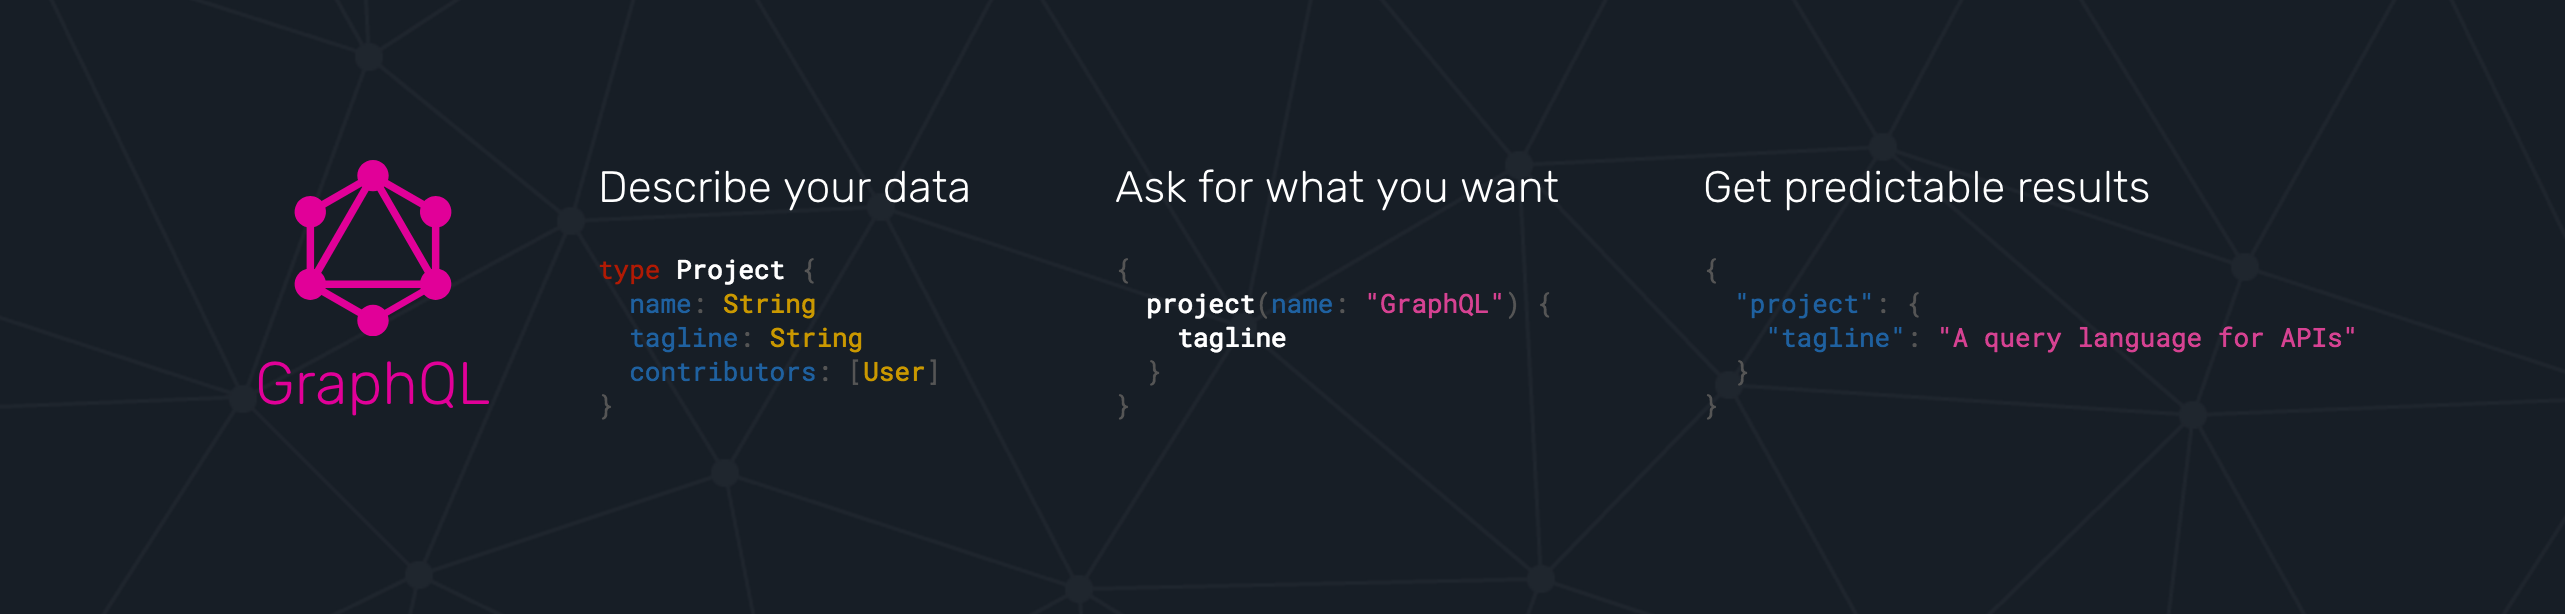 Building a GORM/GraphQL App with React and Apollo   Grails Guides